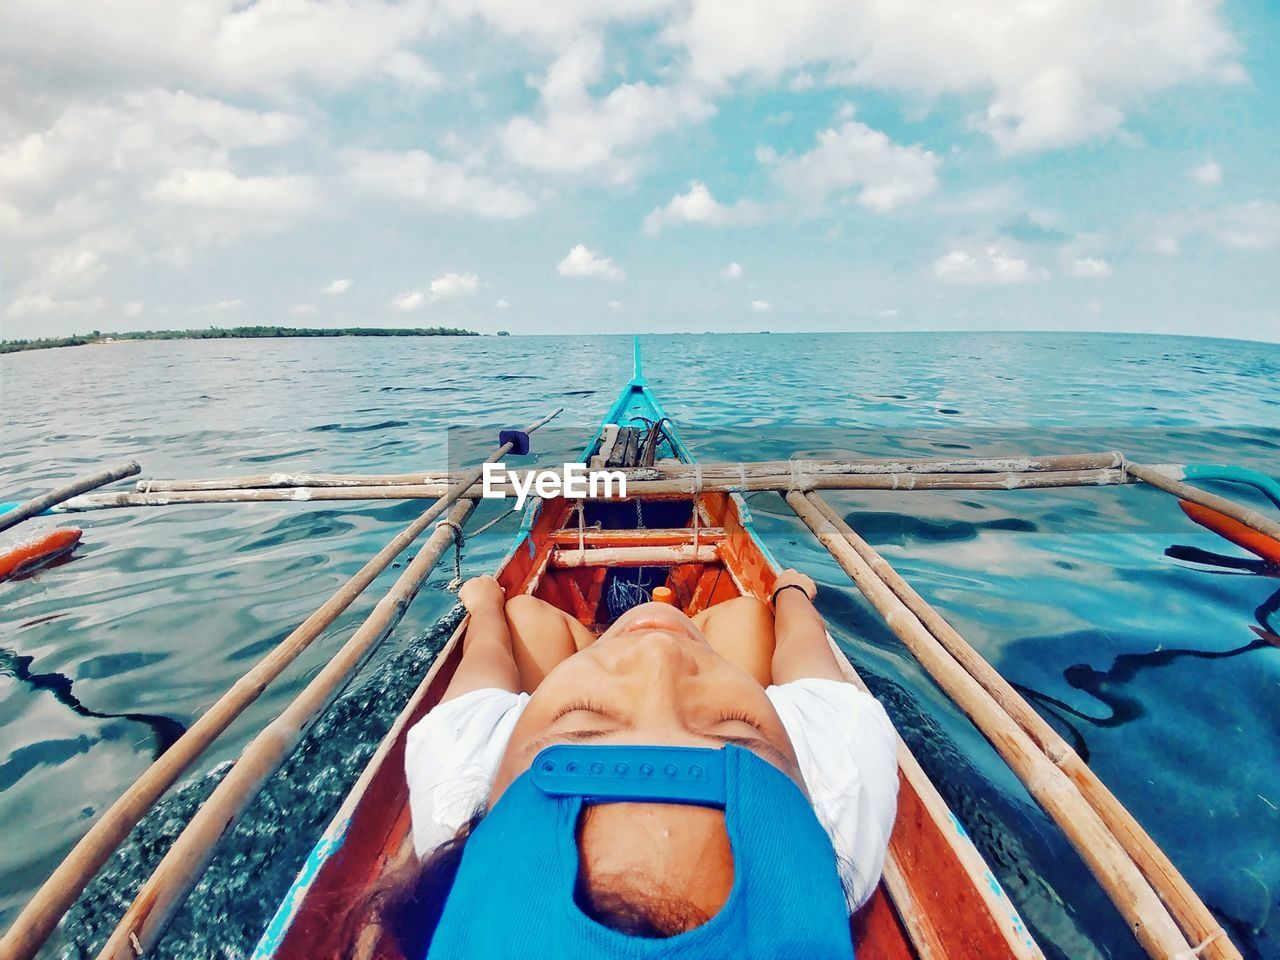 sea, water, nautical vessel, transportation, sky, real people, cloud - sky, horizon over water, mode of transport, one person, outdoors, day, leisure activity, nature, beauty in nature, human leg, human body part, scenics, blue, low section, women, relaxation, sitting, sailing, vacations, boat deck, men, human hand, adult, people